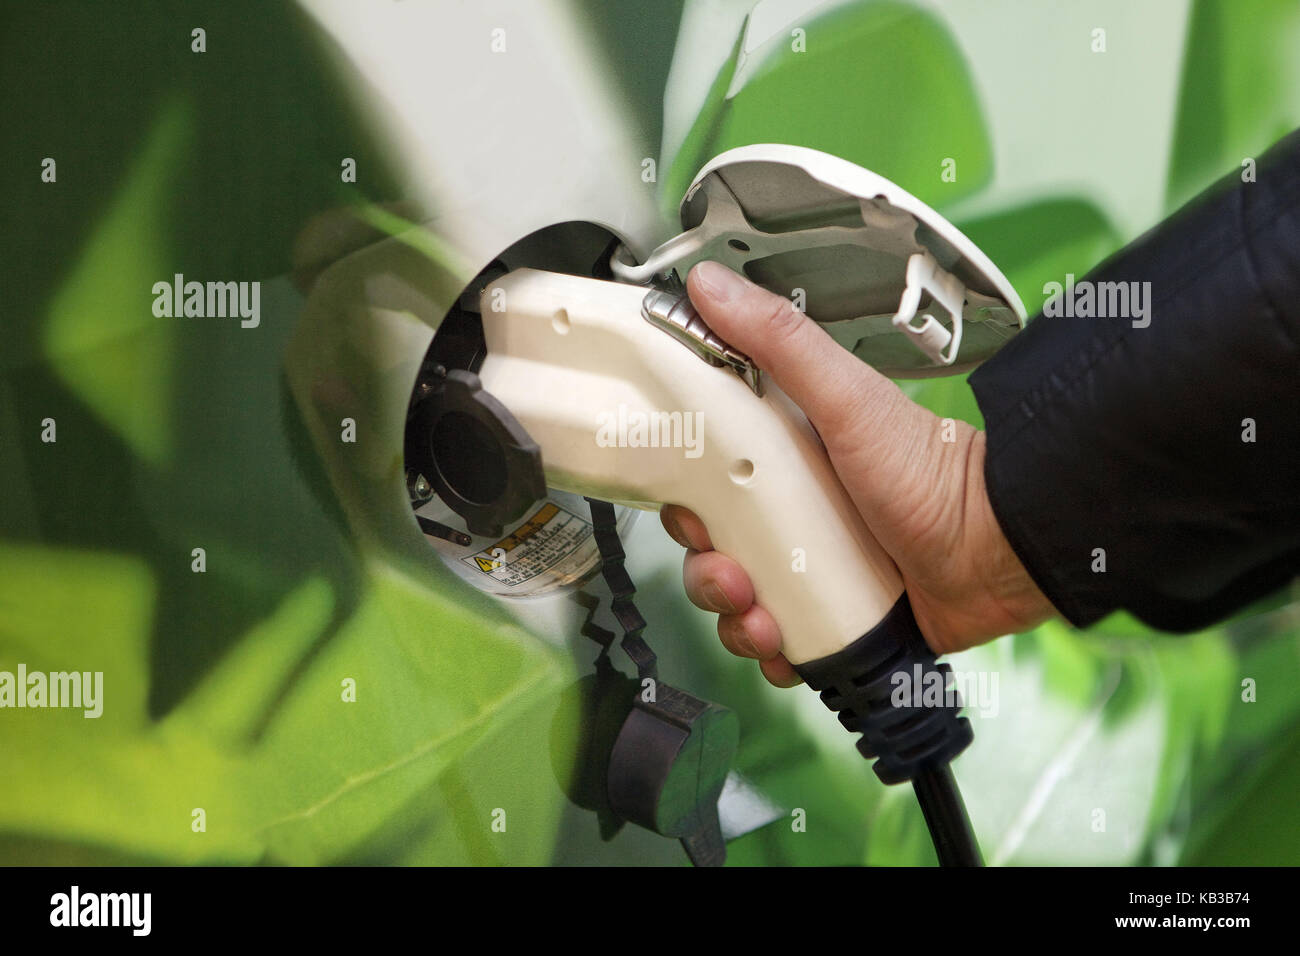 Electric car, charge, medium close-up, biotank, sprite, green, future, biology, icon, biodiesel, bioboom, biosprite, - Stock Image